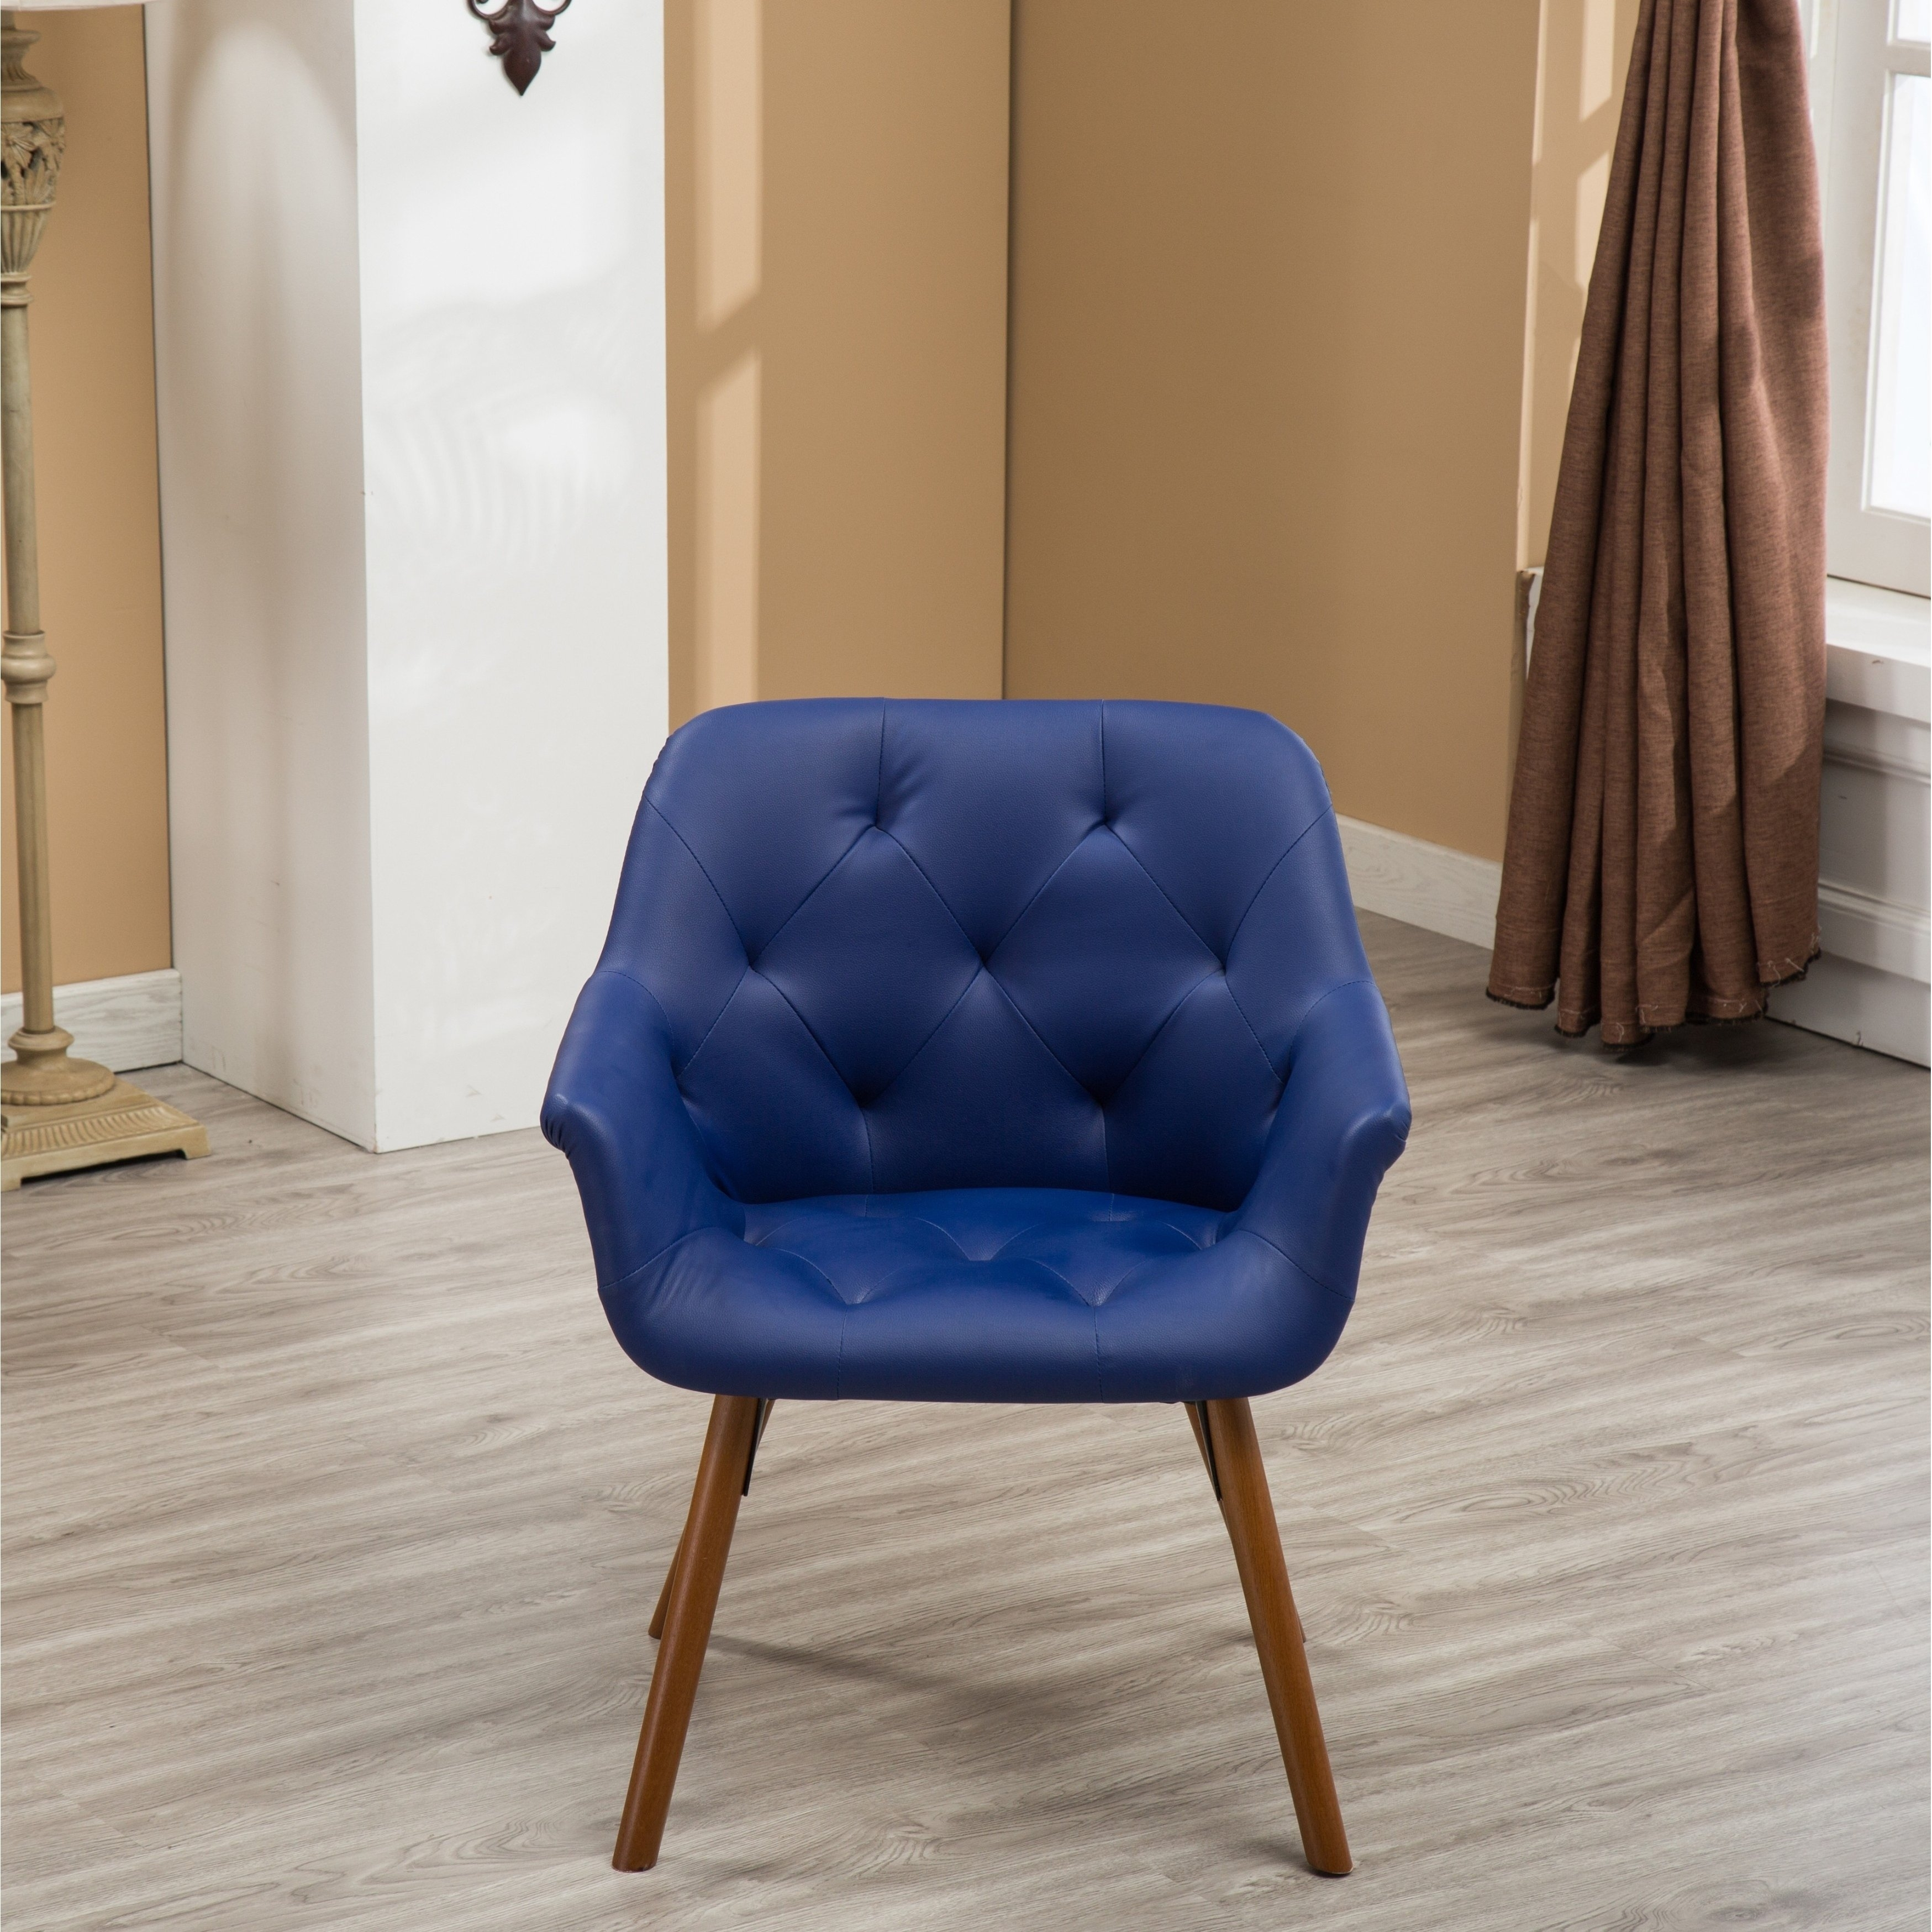 Our Best Living Regarding Most Recently Released Nautical Blue Side Chairs (#14 of 20)